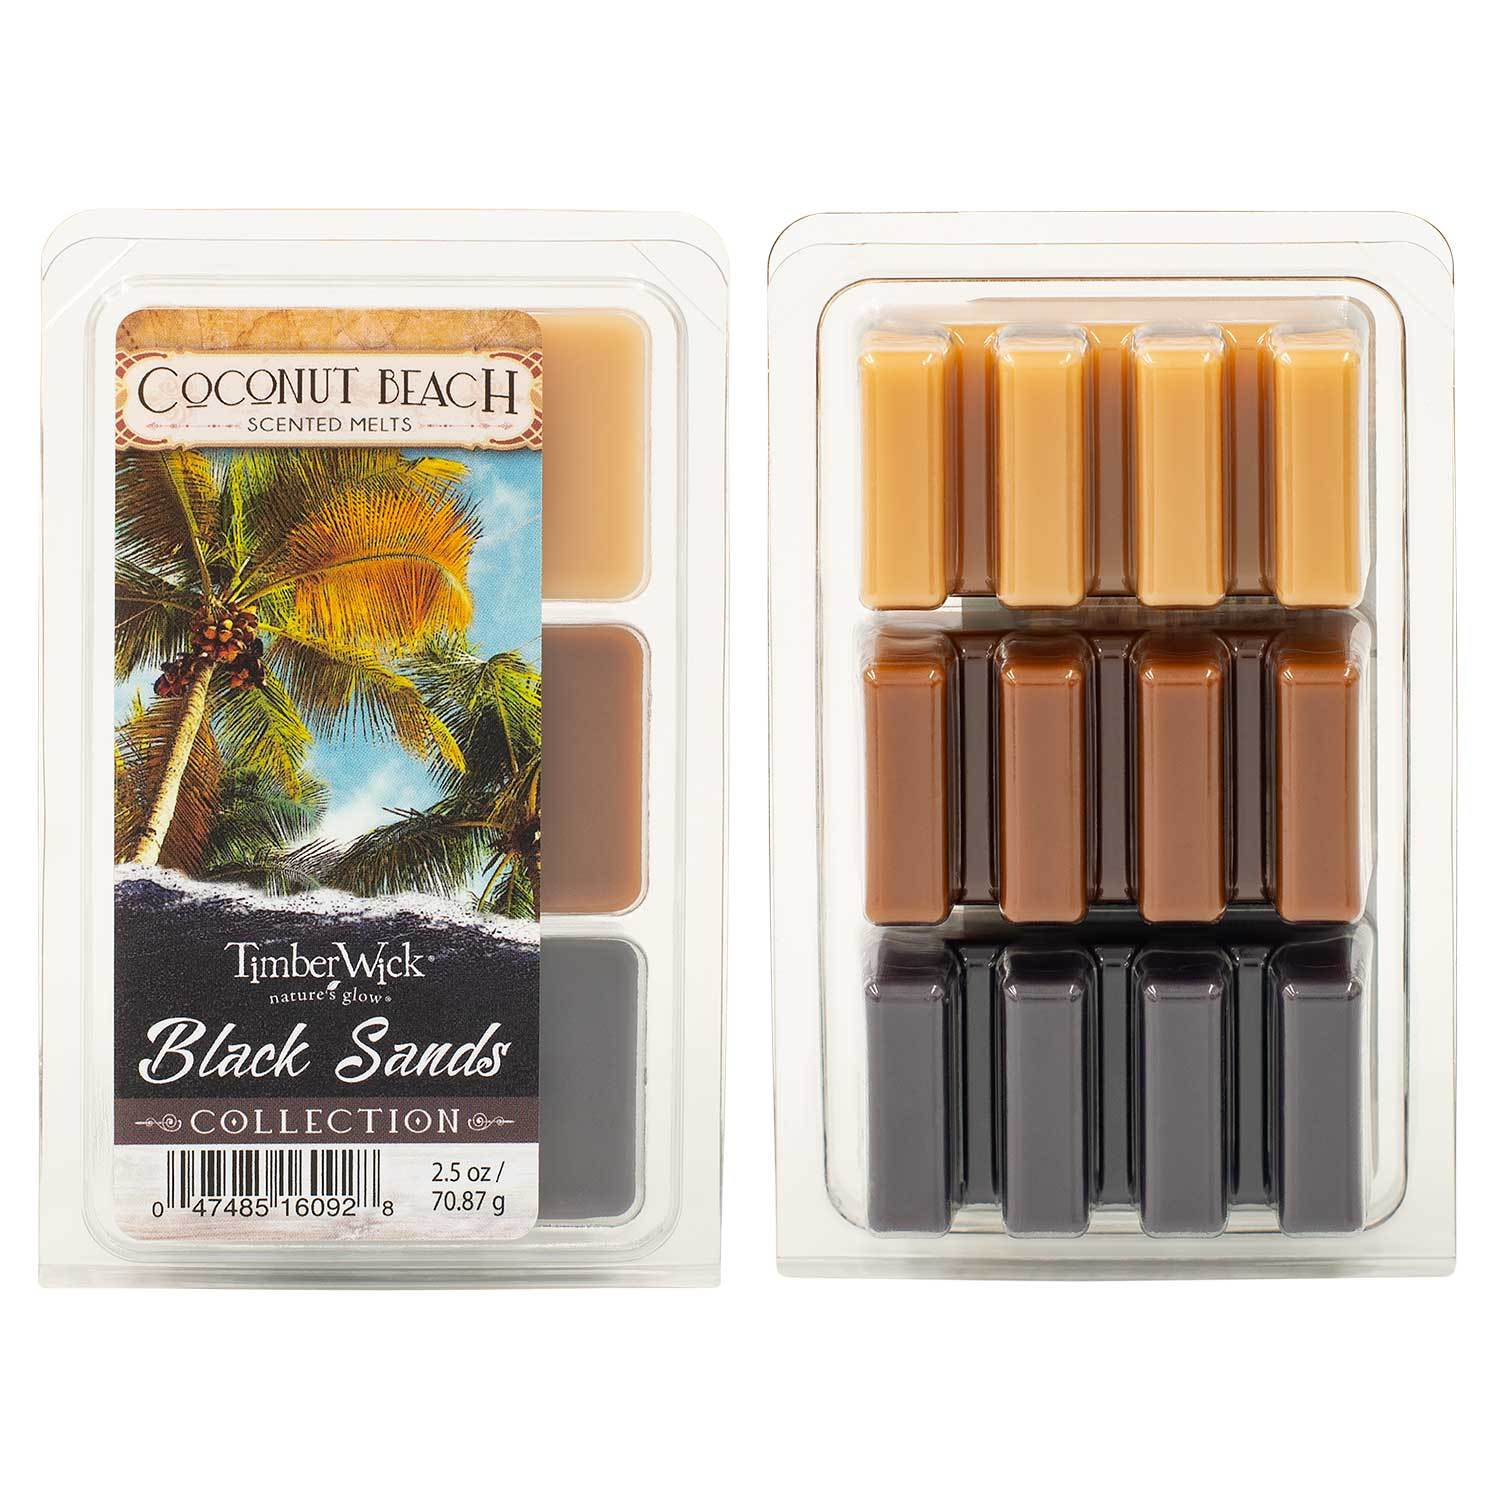 Coconut Beach Scented Wax Melts Melts Candlemart.com $ 2.49